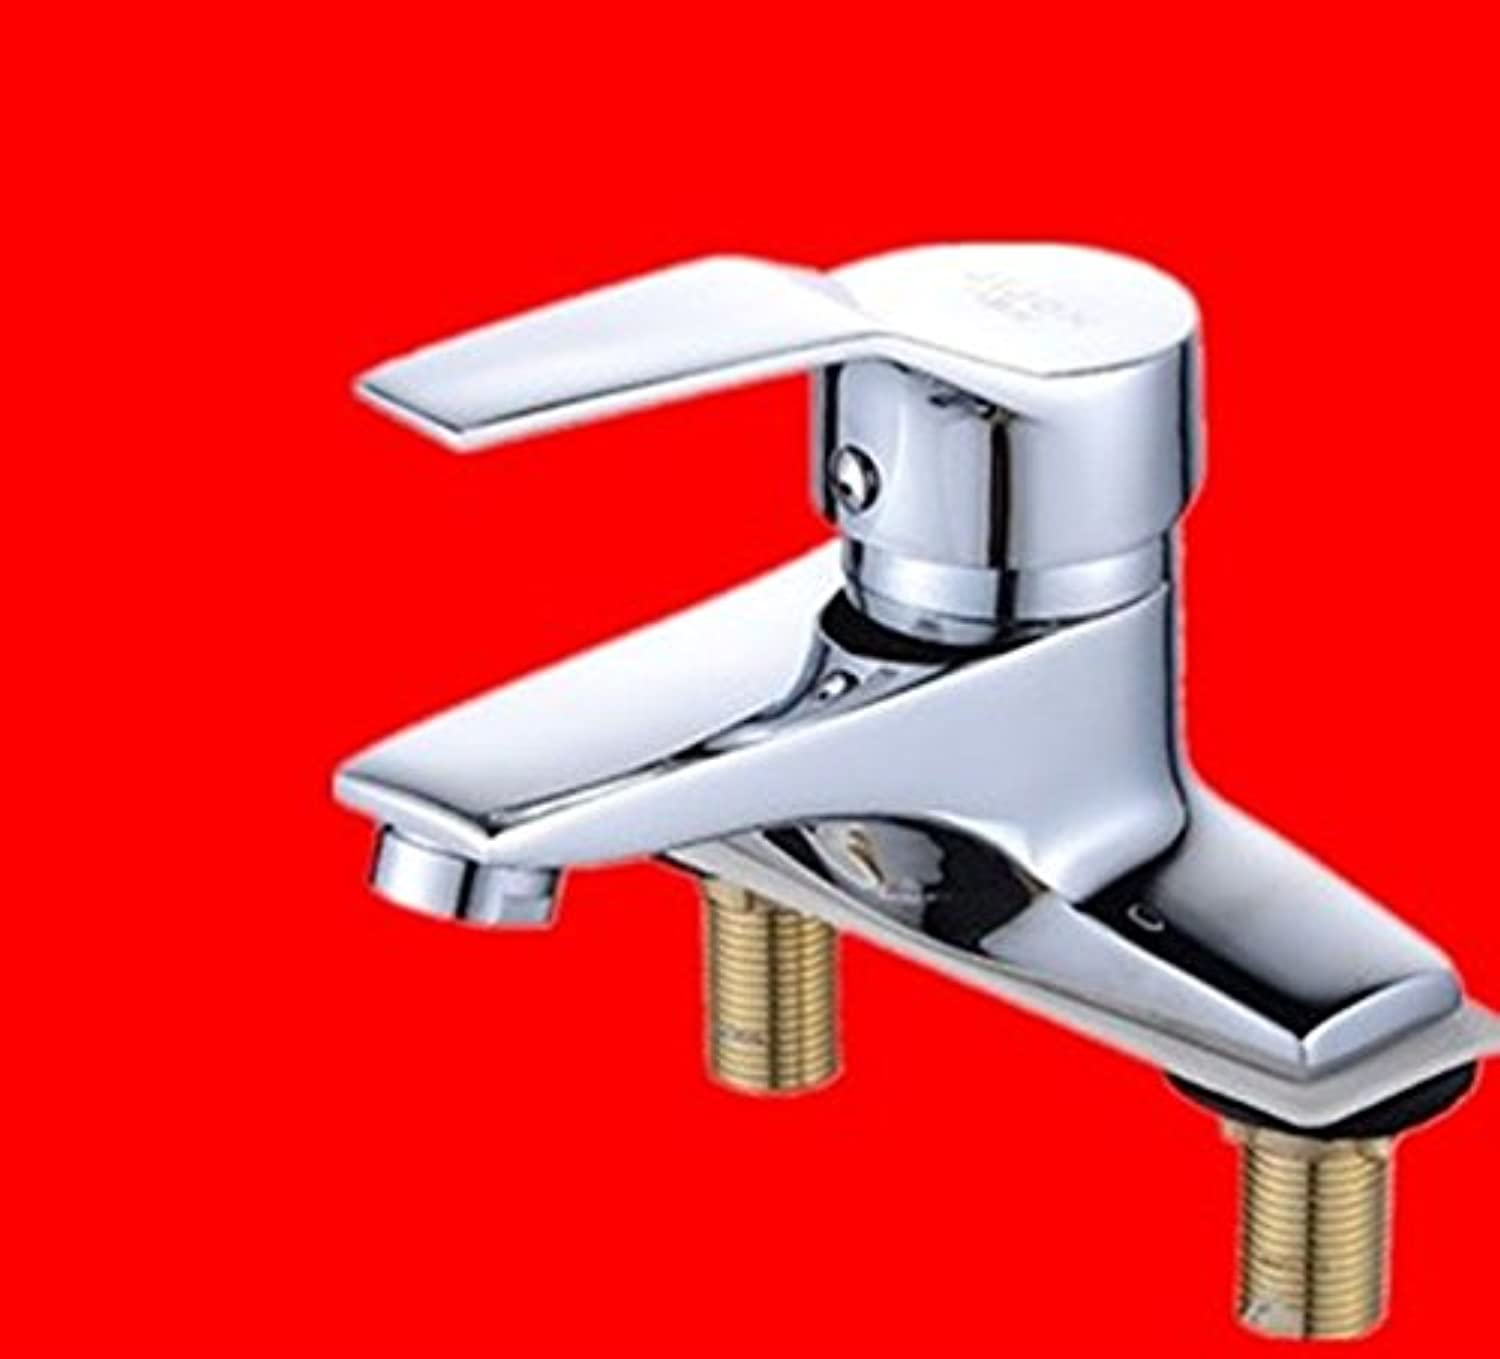 MulFaucet Faucet Water tap Taps Swivel Hoses Basin Copper Double Hole Three Holes hot and Cold Bathroom G